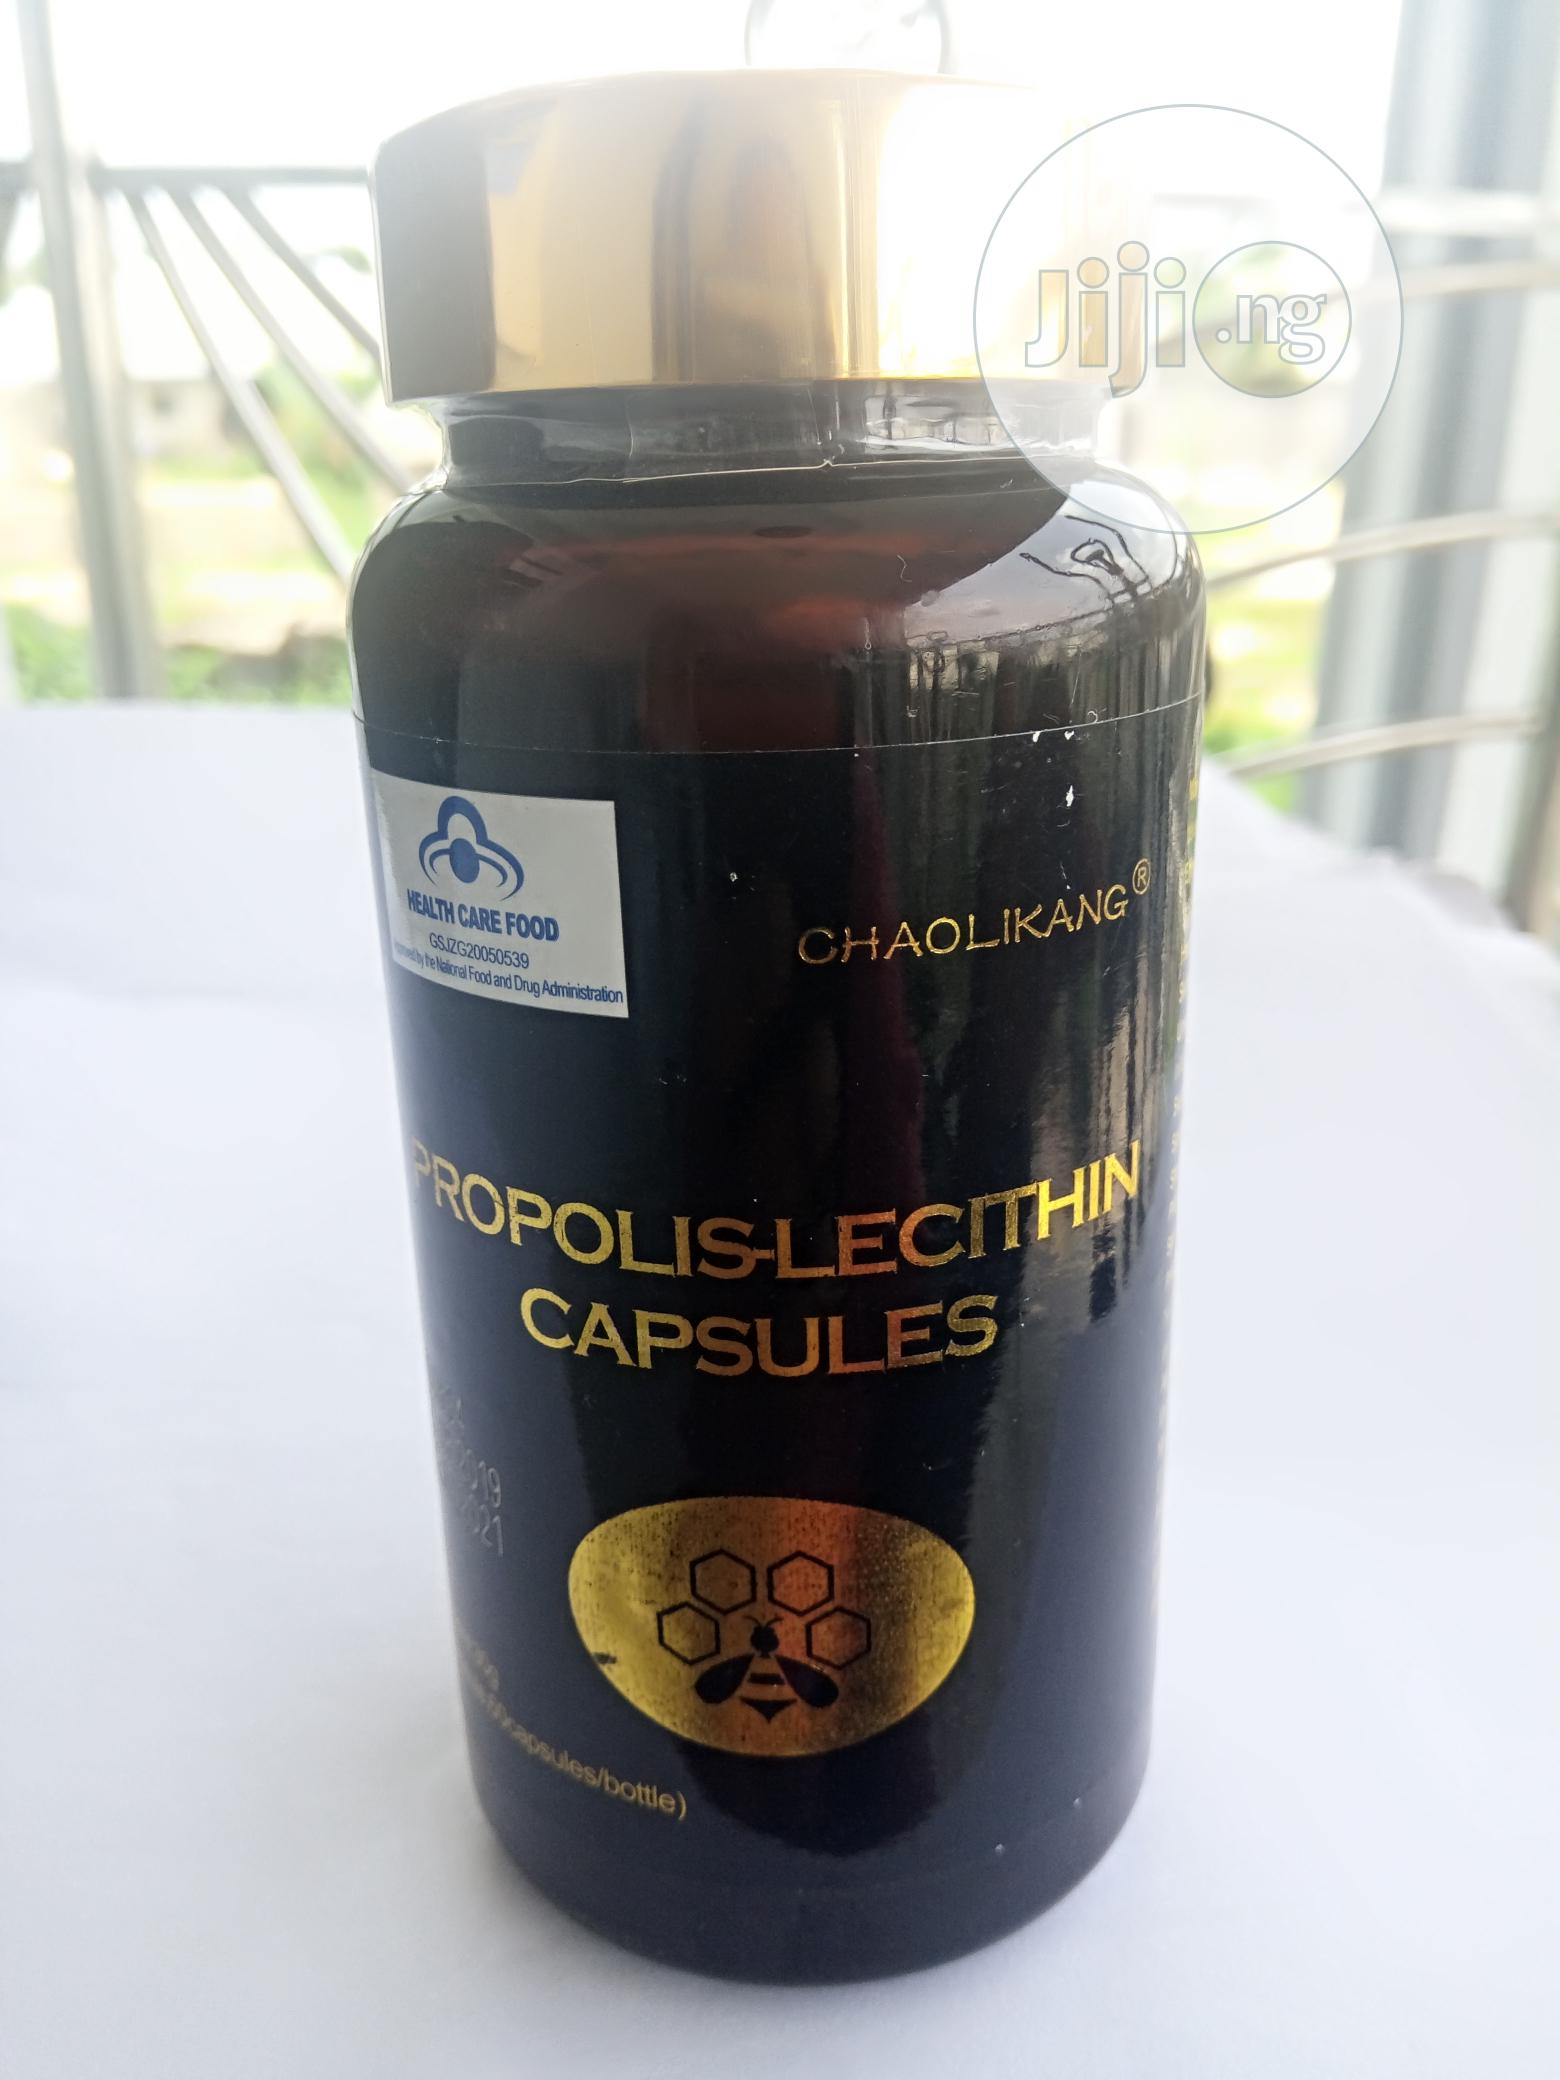 With Propolis Lecithin Capsules You Can Treat Infections Permanently